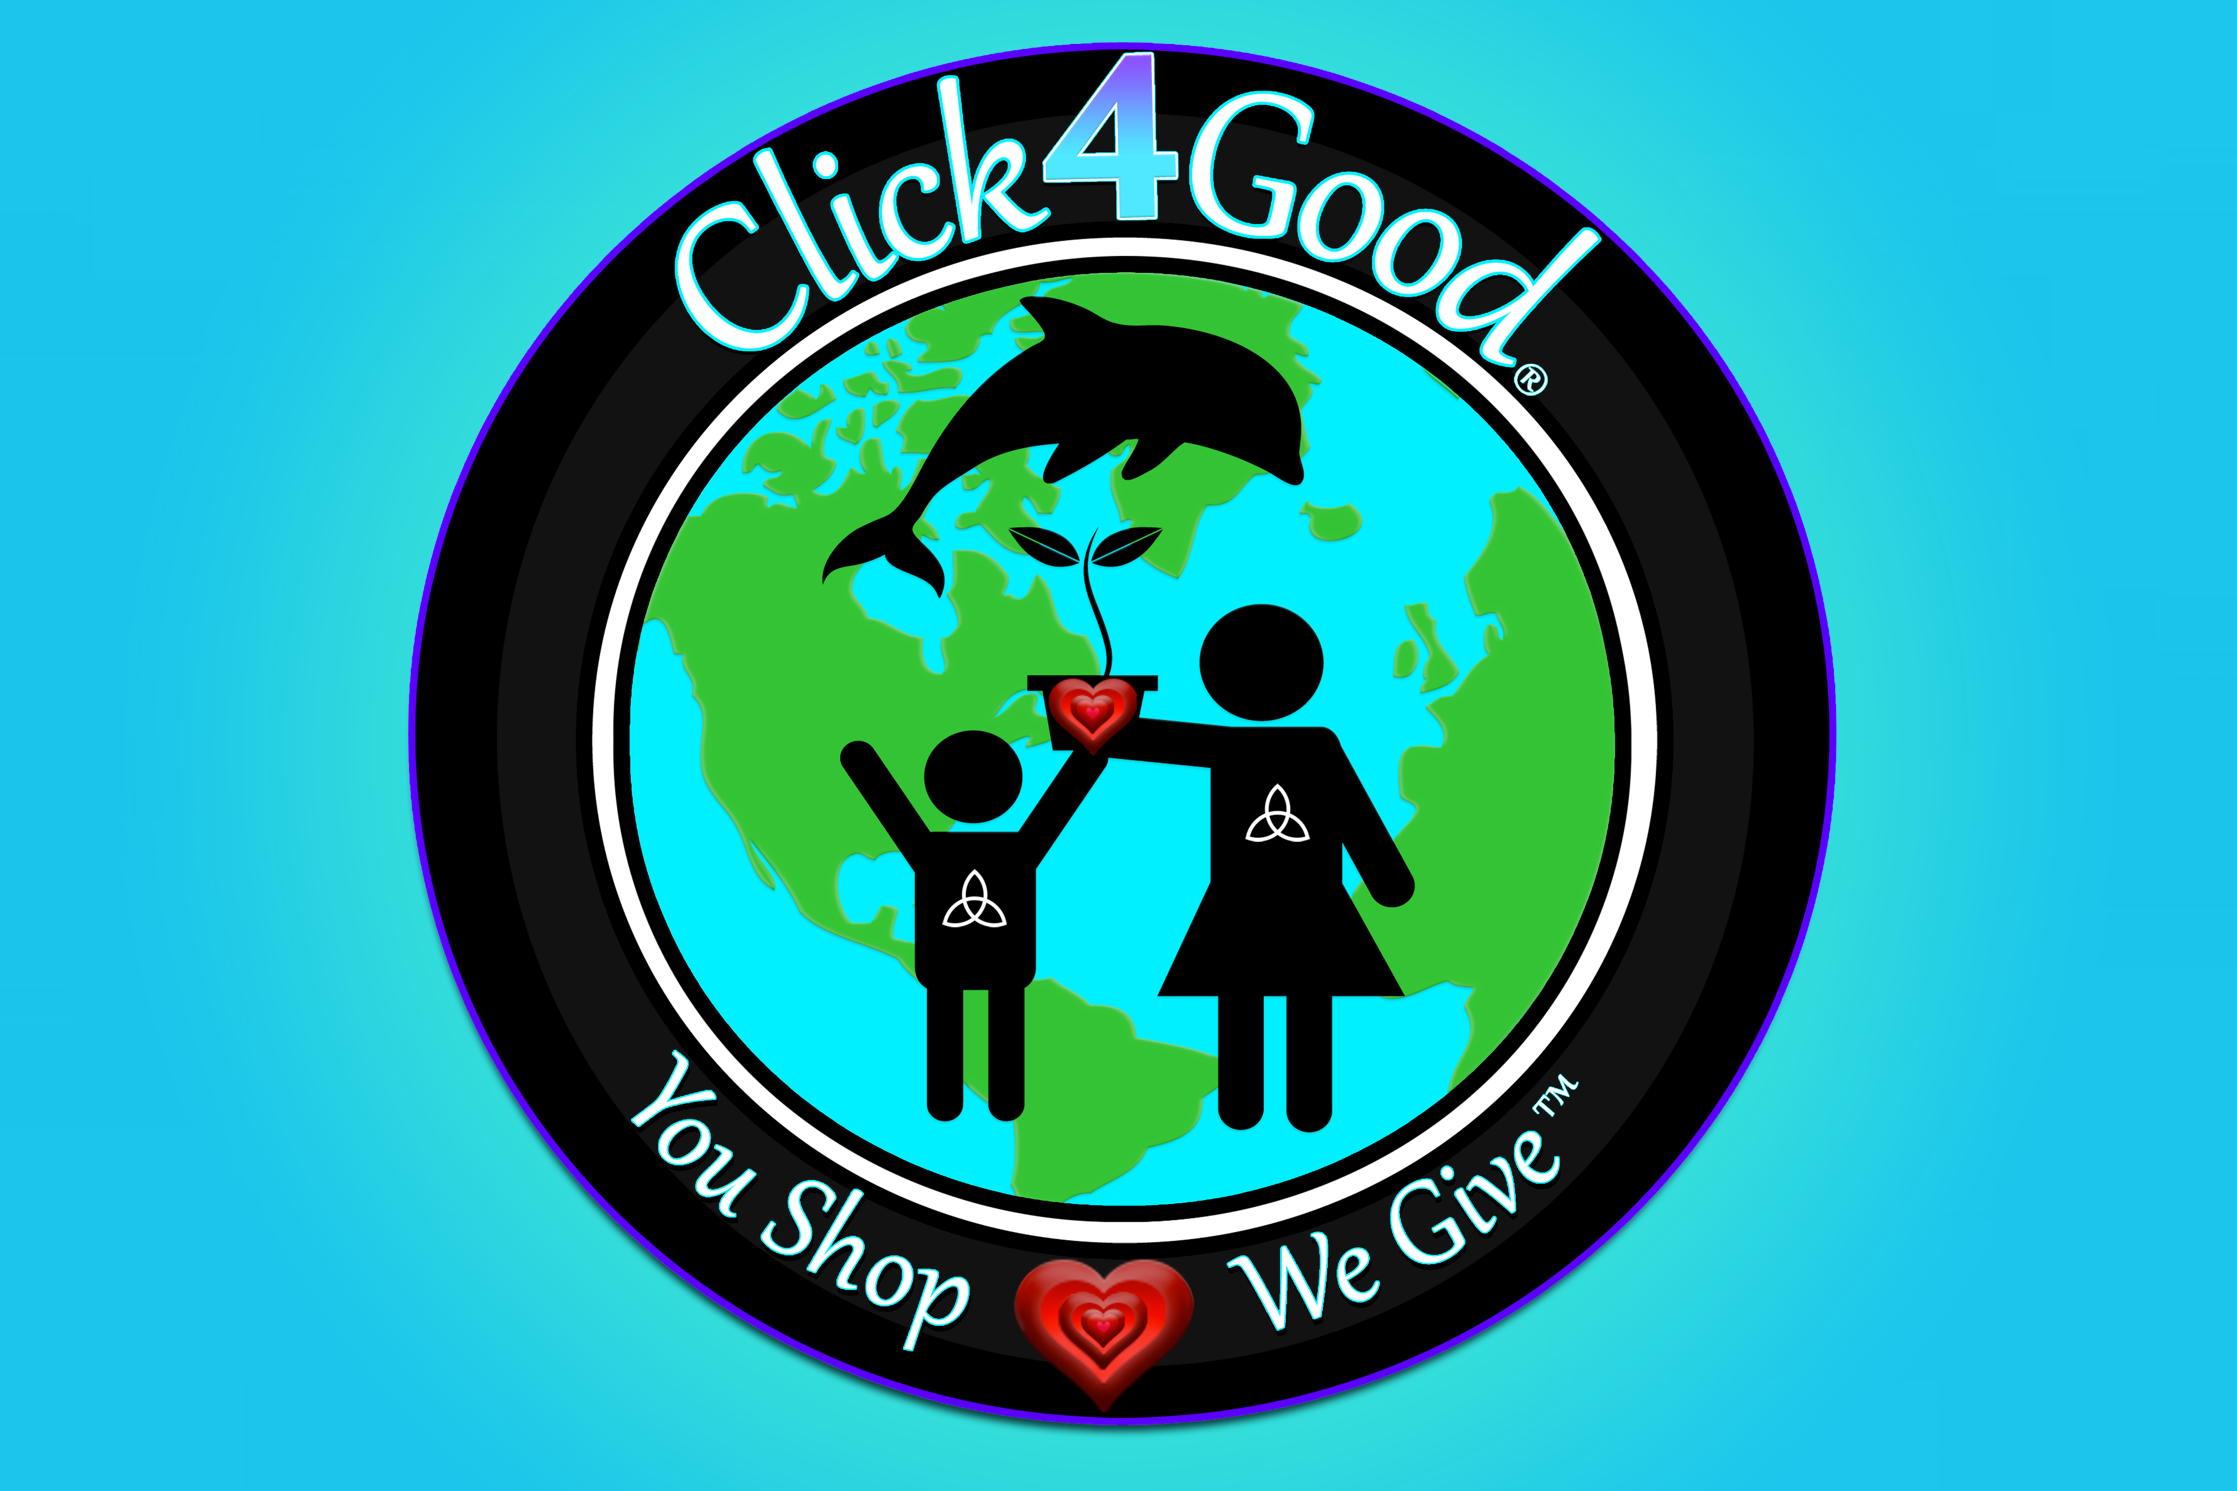 KNOWLEDGE IS GOOD - Click4Good.org just wants to make it perfectly clear that the shopping options in the form of links shown on this page are part of various affiliate advertising programs for various businesses and are in no way affiliated with us, or our donation process. We get commissions/fees for advertising for our individual affiliates by way of these programs, and we choose to share it with great charities. Learn more about affiliate programs by clicking the white button